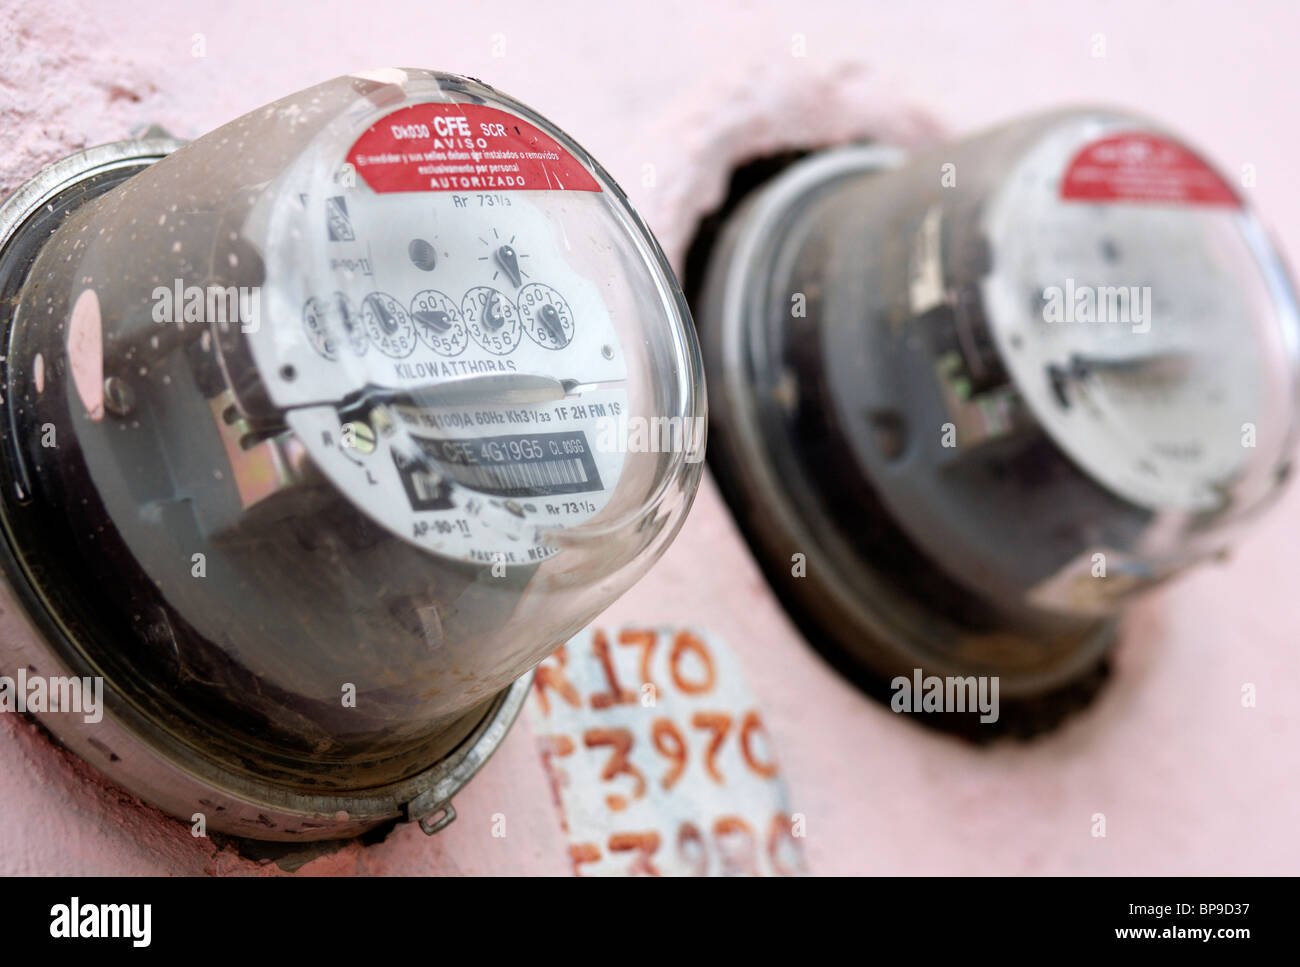 Electricity meter in San Cristobal de Las Casas in Chiapas in Mexico - Stock Image